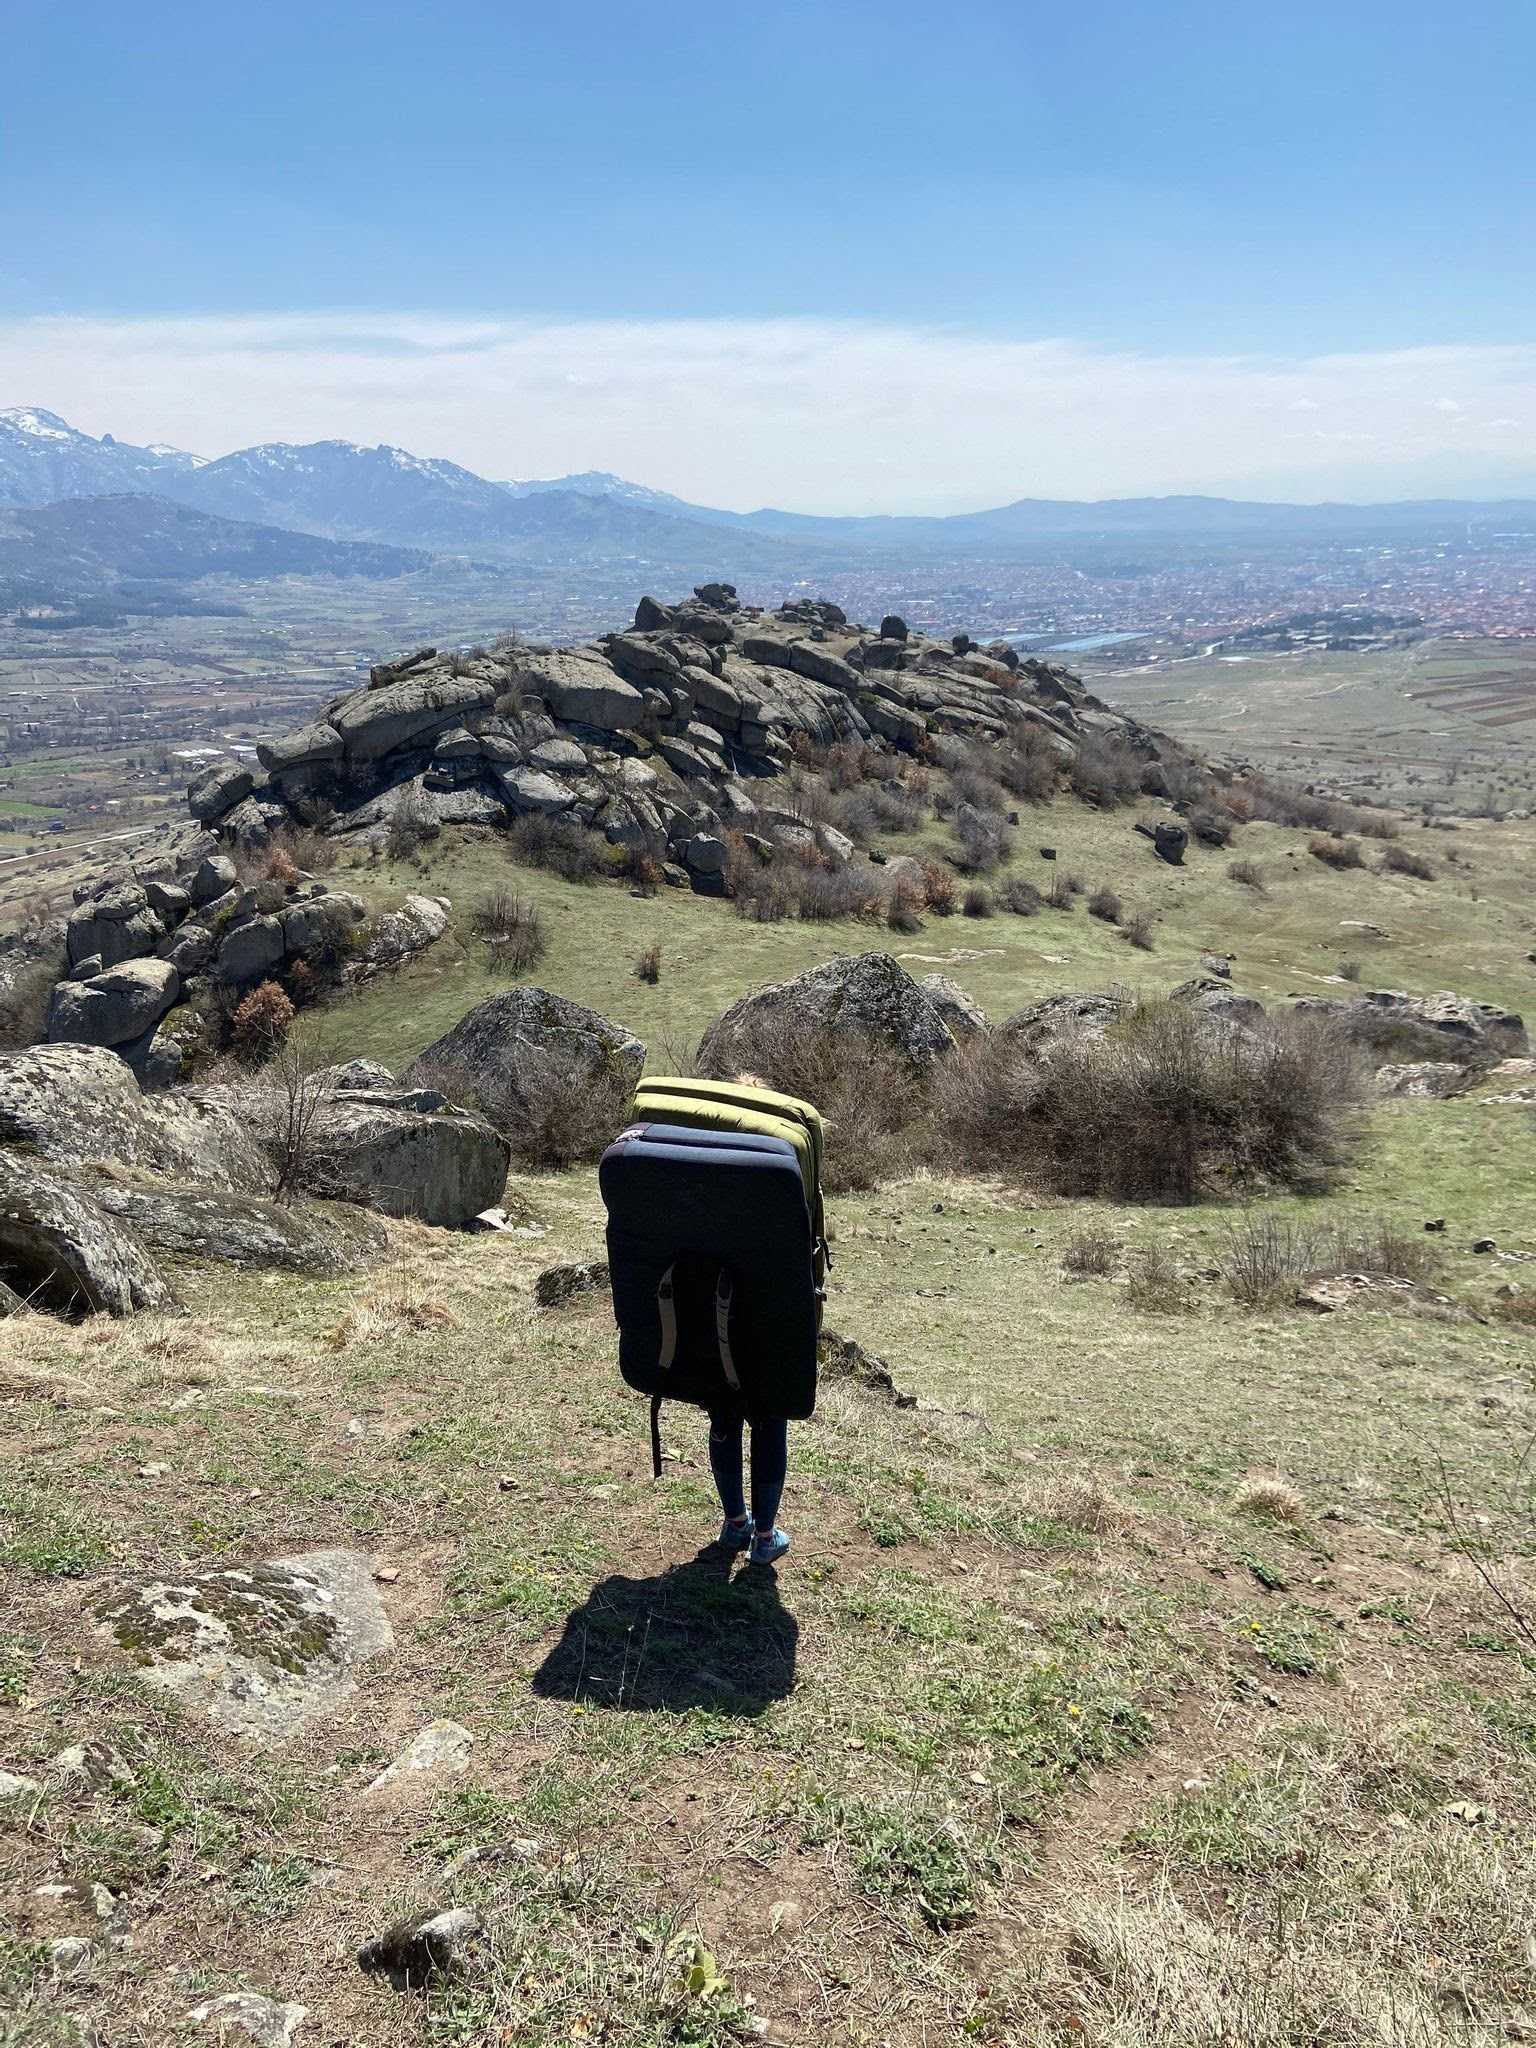 Two bouldering pads strapped together looking out towards a boulder field. The city of Prilep is in the background.